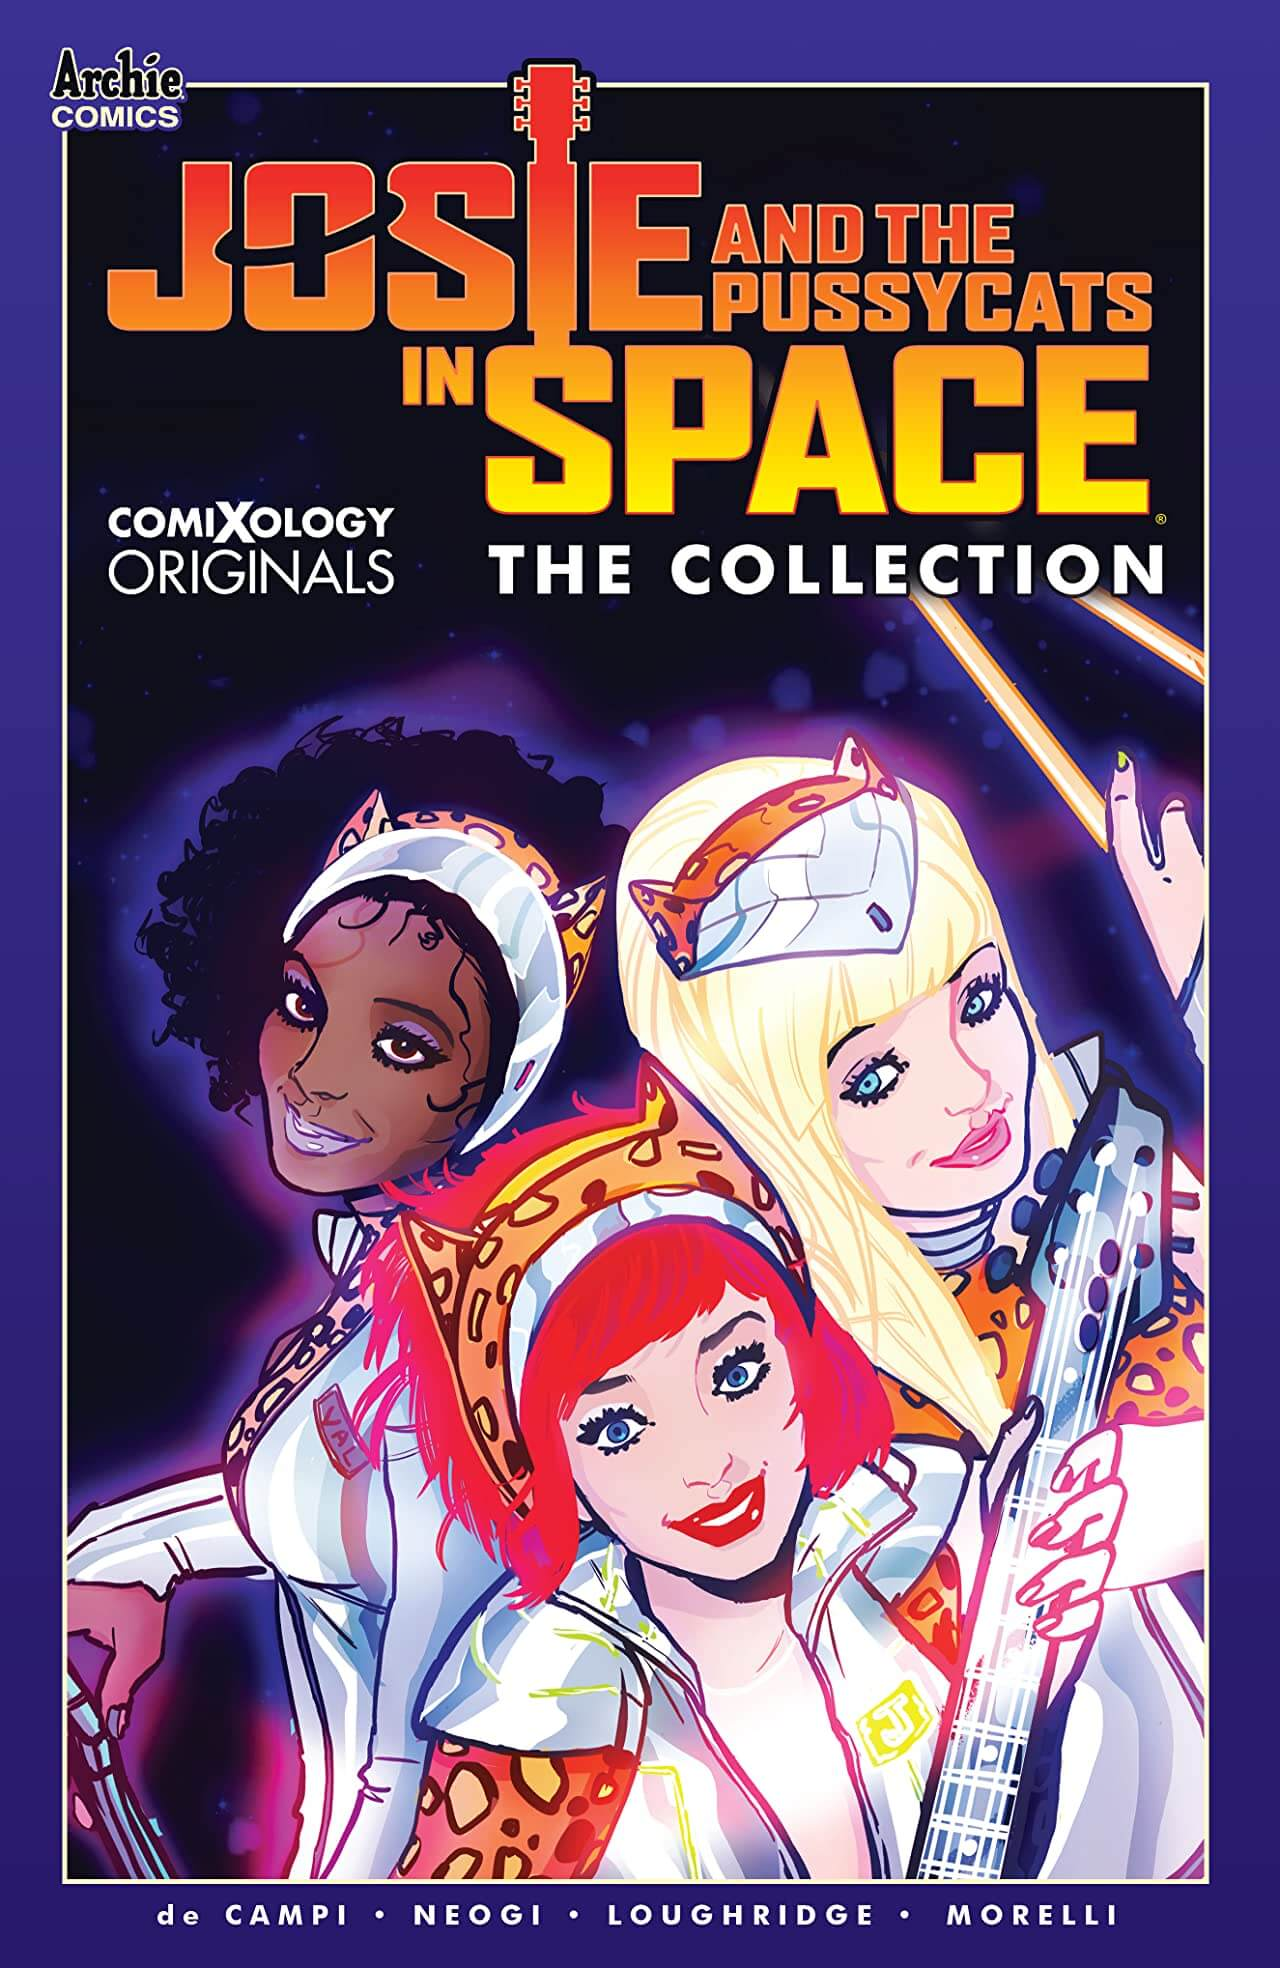 Josie and the Pussycats in Space Cover A. Archie Comics. April 2020